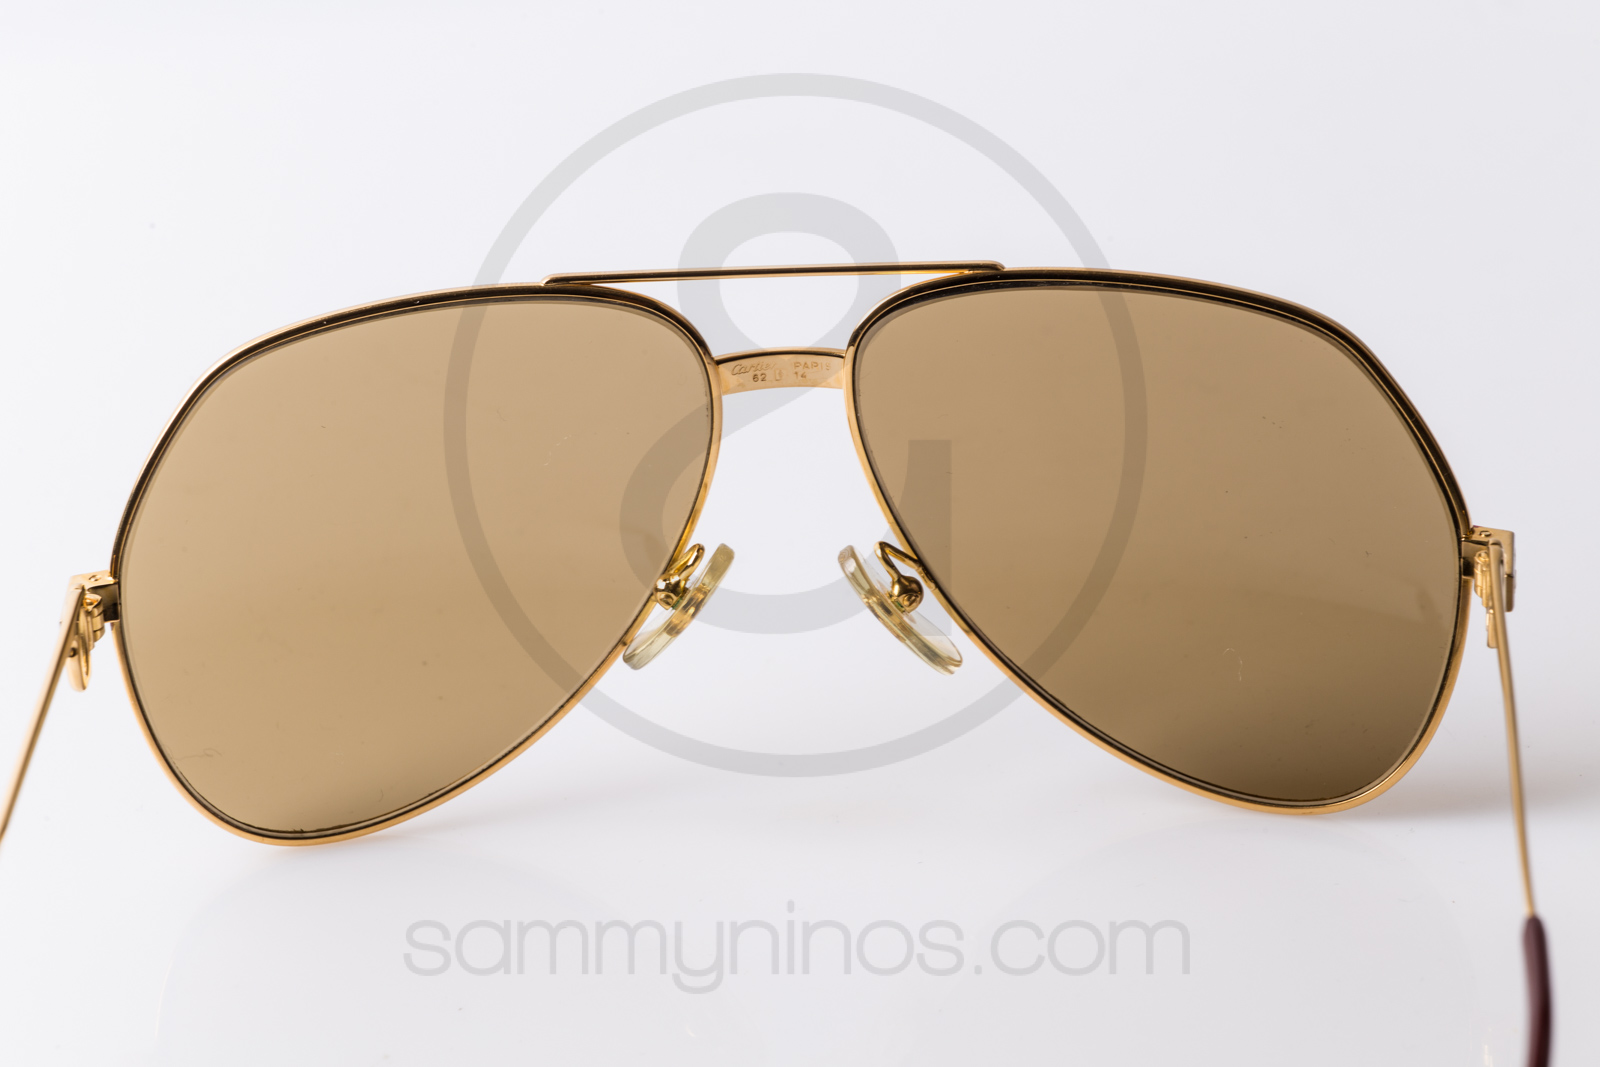 cartier santos eyeglasses fzqa  cartier sunglasses vendome santos